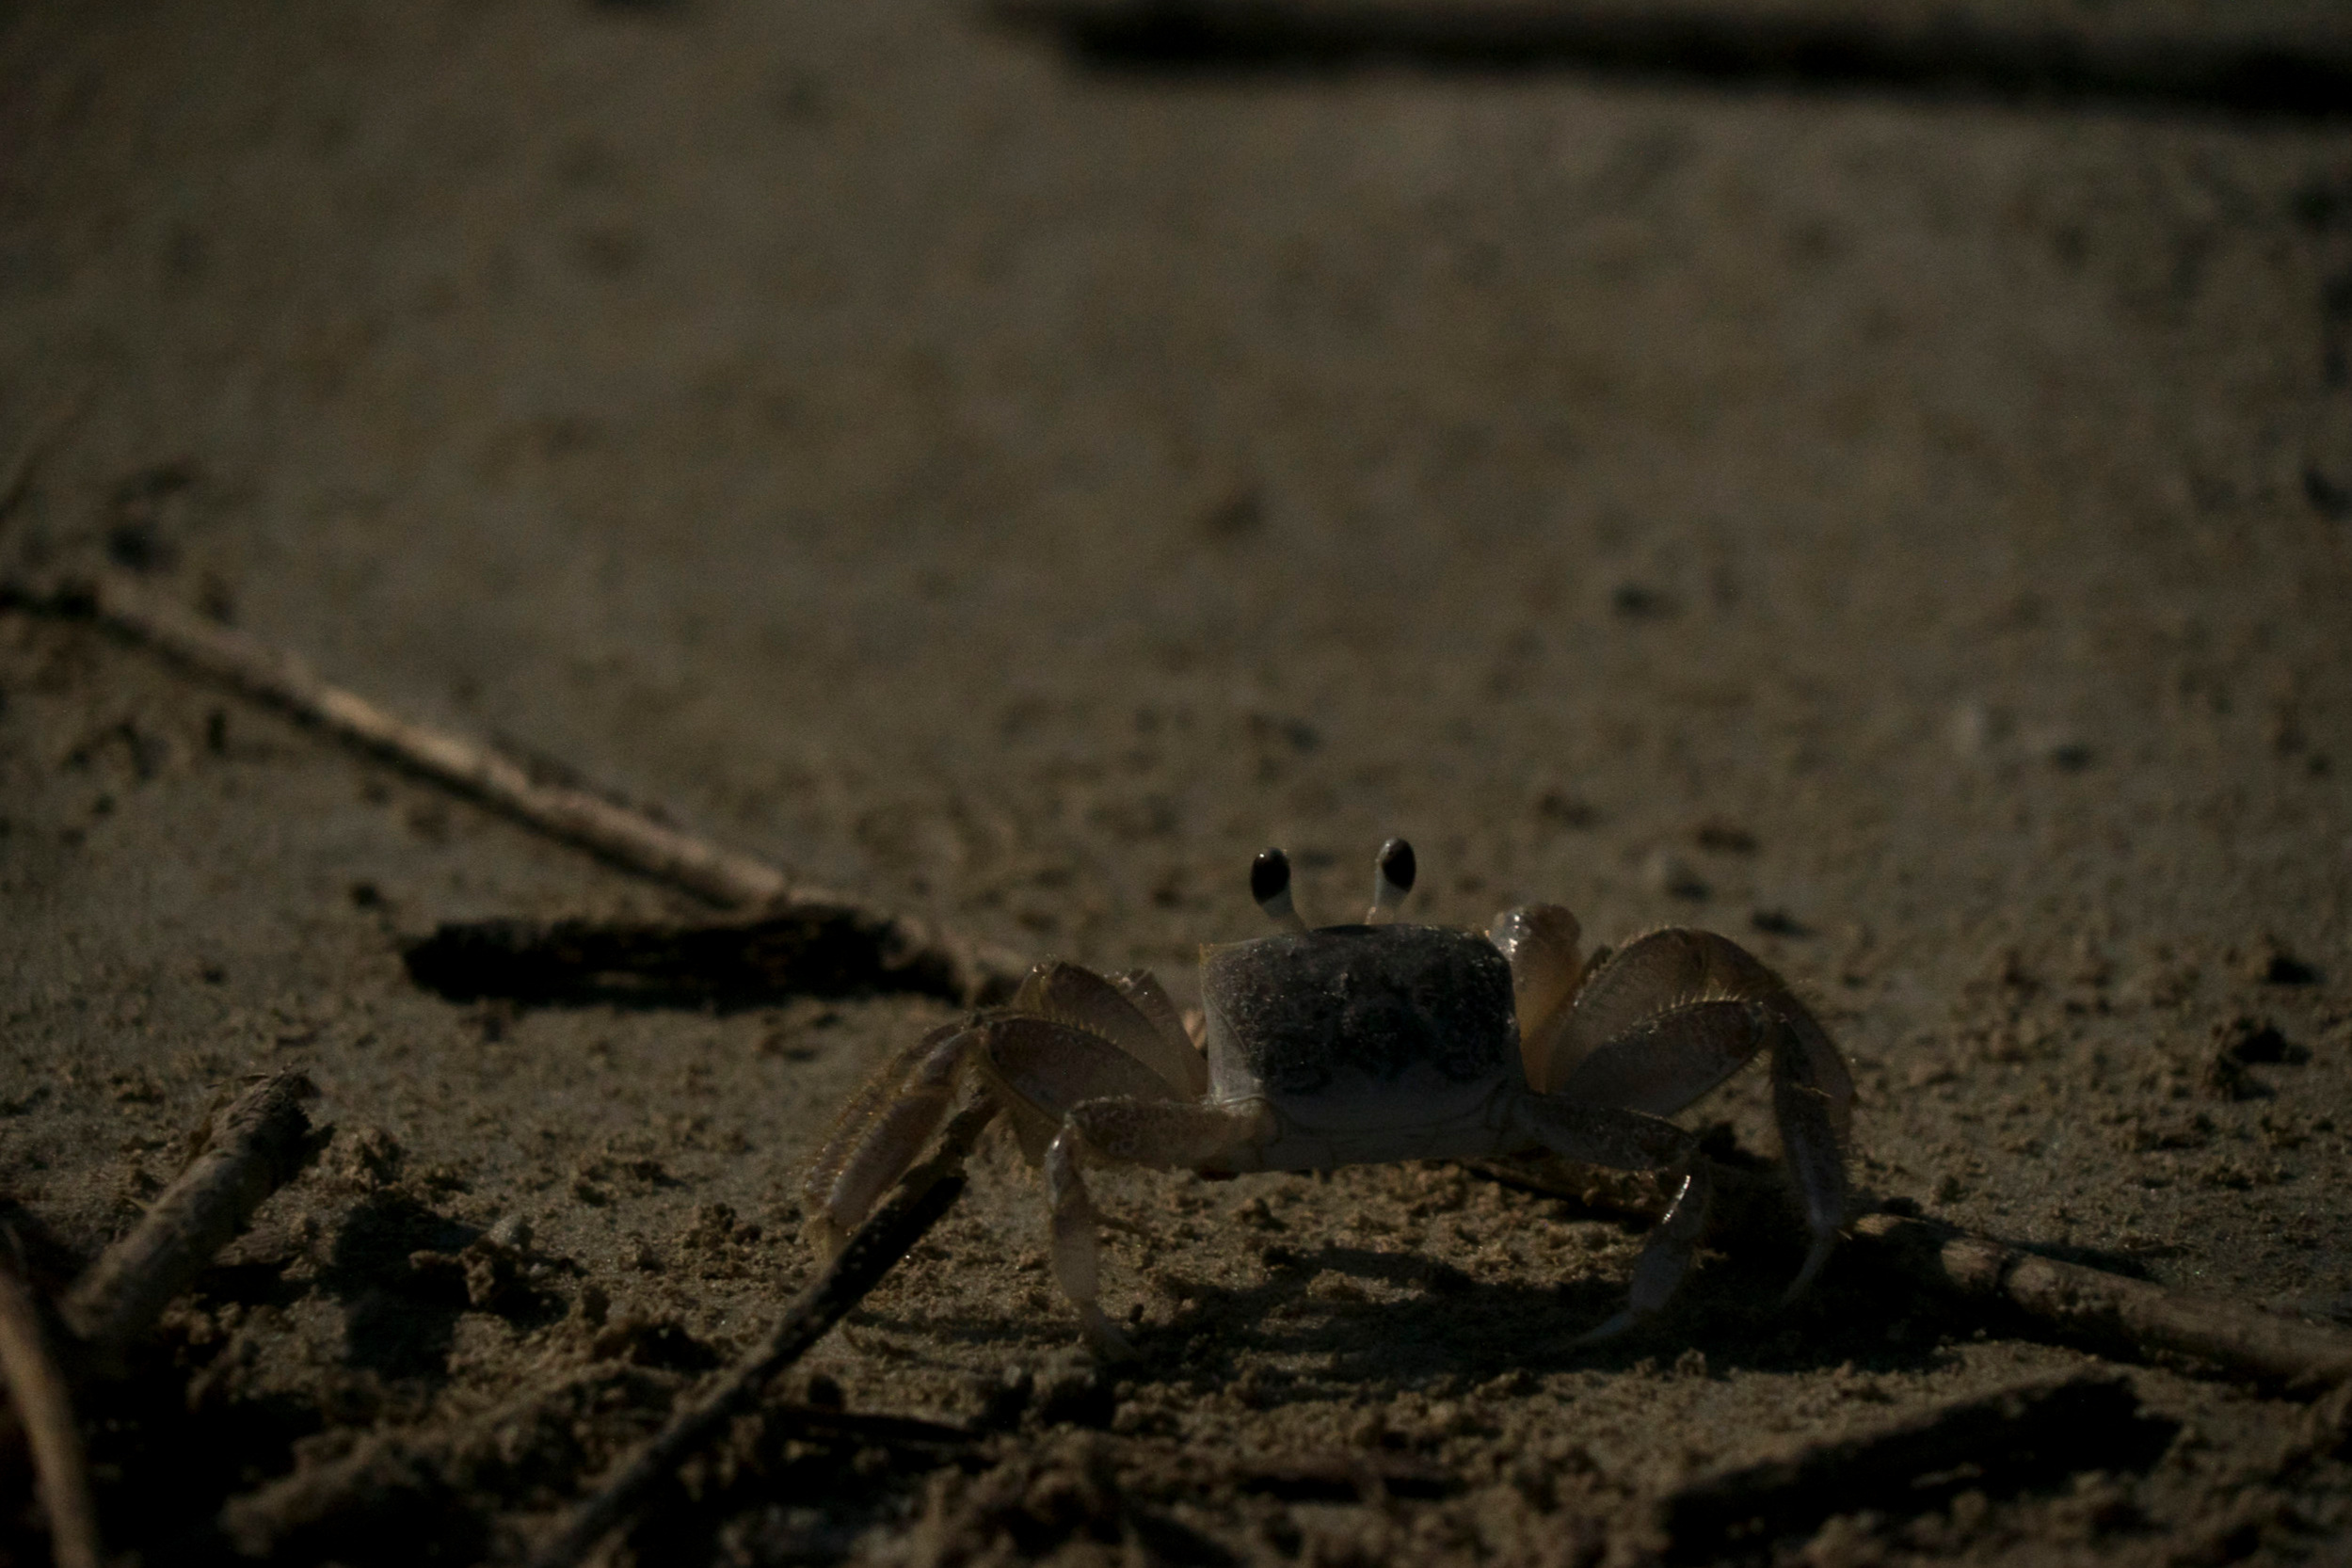 Ghost crab foraging at night